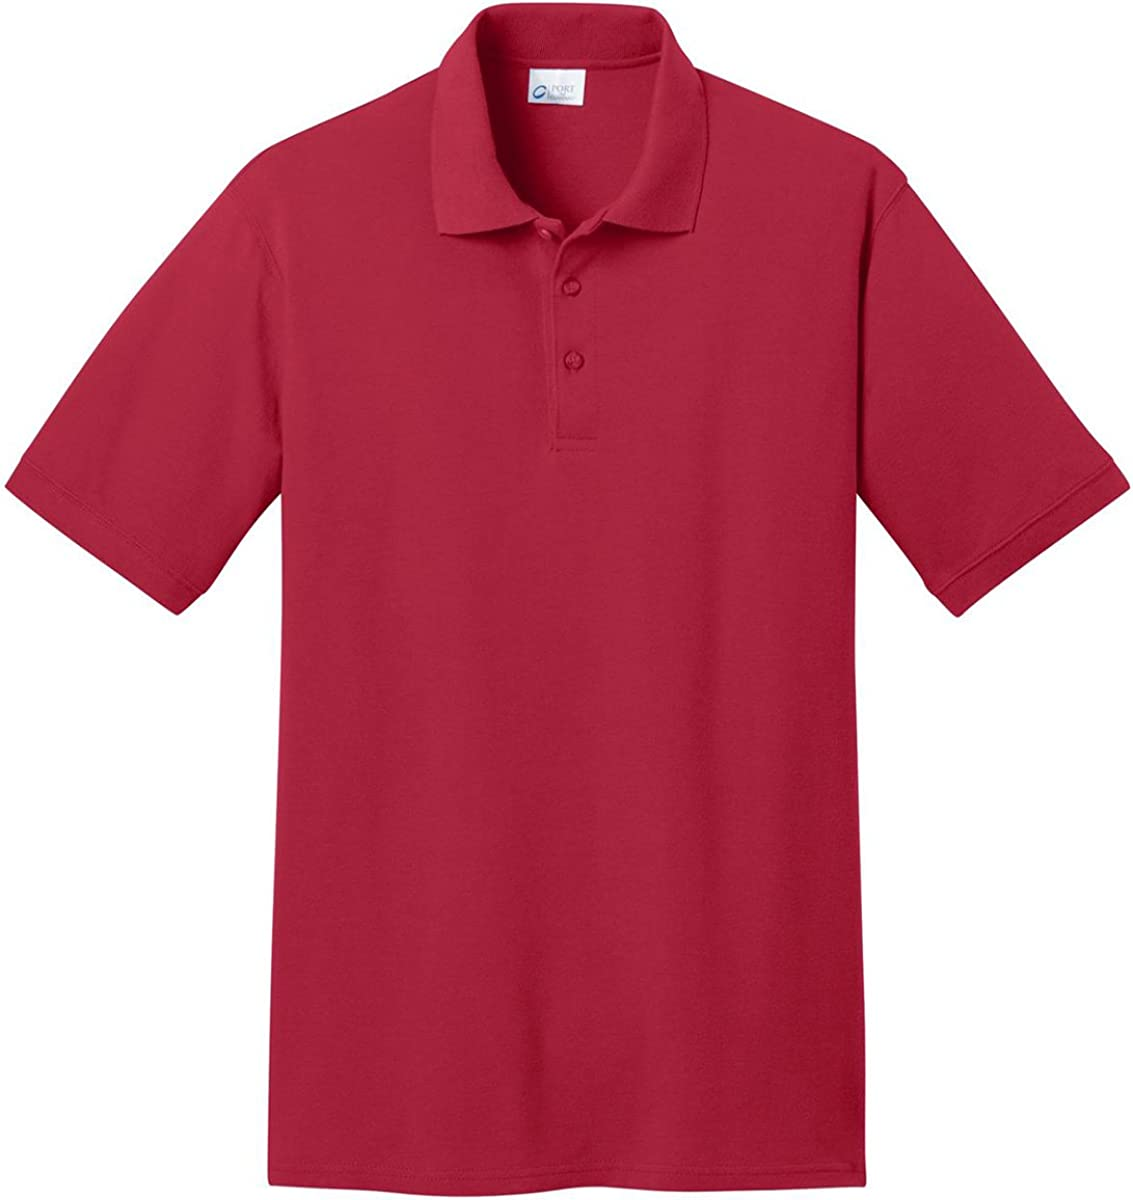 Port & Company Core Blend Pique Polo. KP155 Red